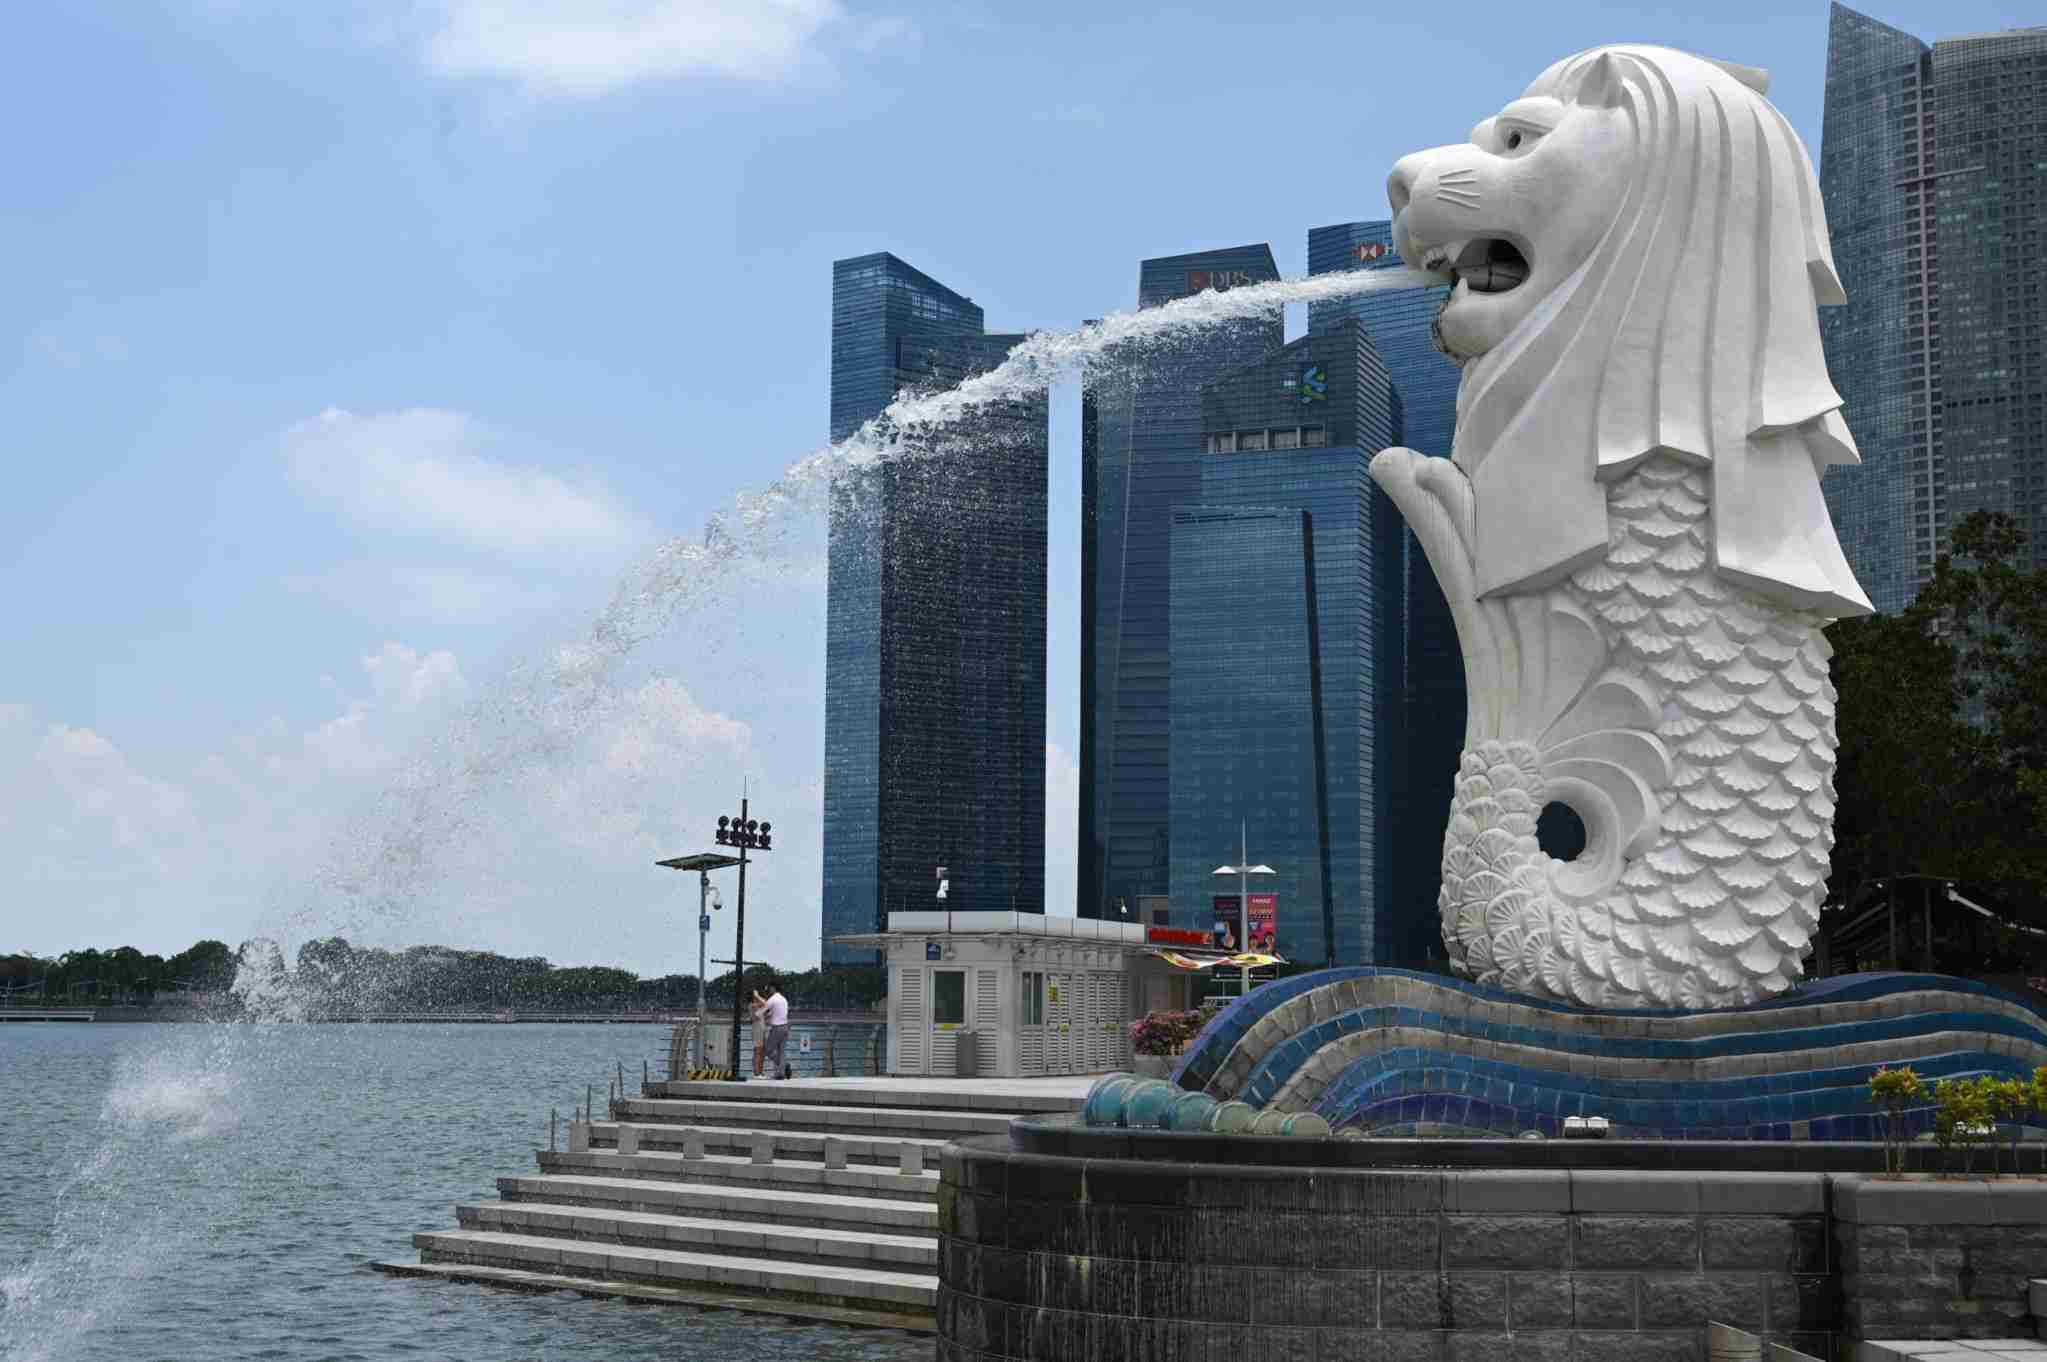 The Merlion statue is seen in Singapore on April 2, 2020, as the government slowly tightens restrictions to combat the spread of the COVID-19 novel coronavirus. (Photo by Roslan RAHMAN / AFP) (Photo by ROSLAN RAHMAN/AFP via Getty Images)